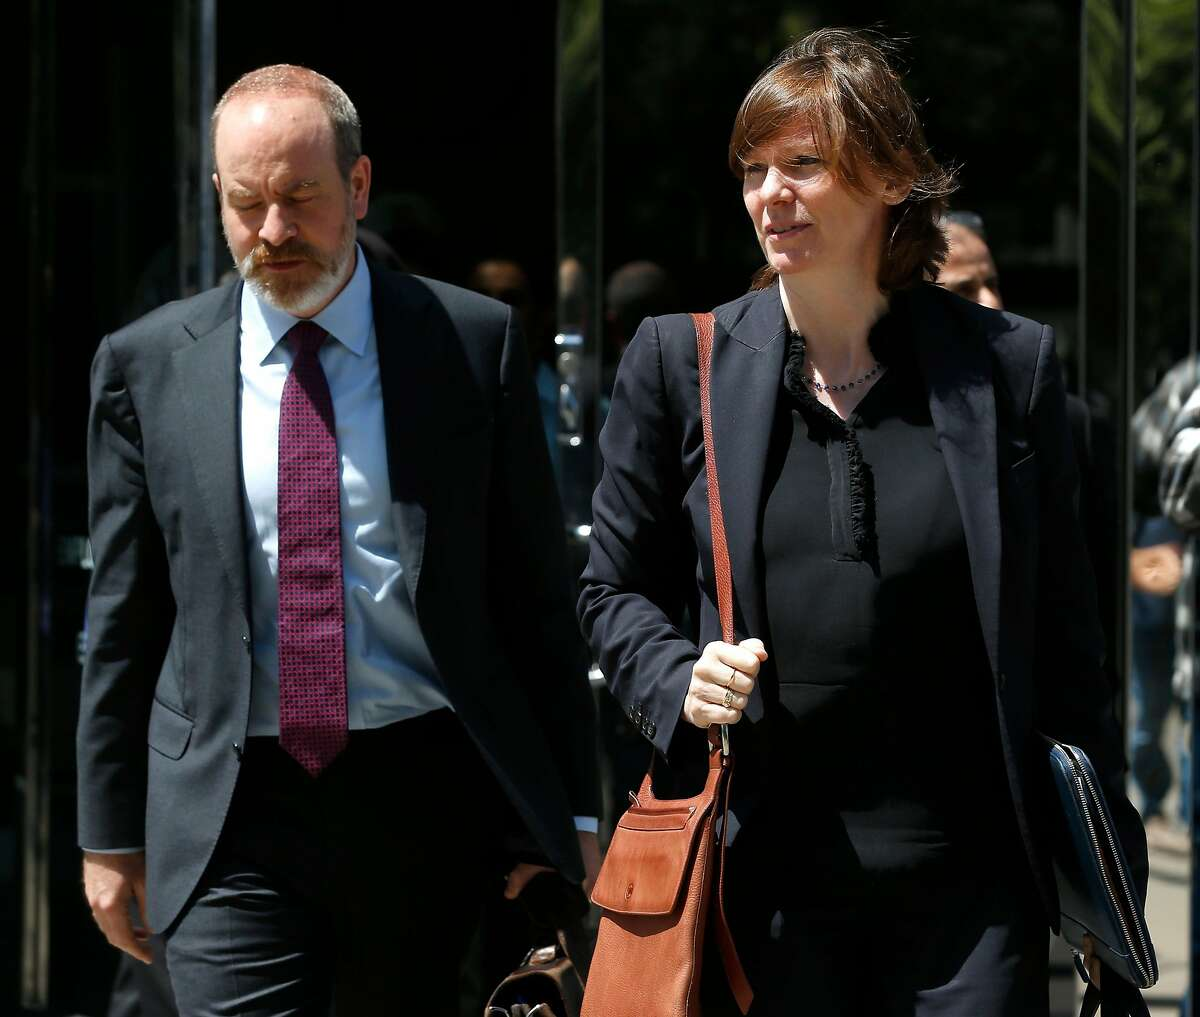 Attorneys August Gugelmann and Mary McNamara leave the Phillip Burton Federal Building and Courthouse after Amer Alhaggagi plead guilty to federal terrorism charges in San Francisco, Calif. on July 18, 2018.